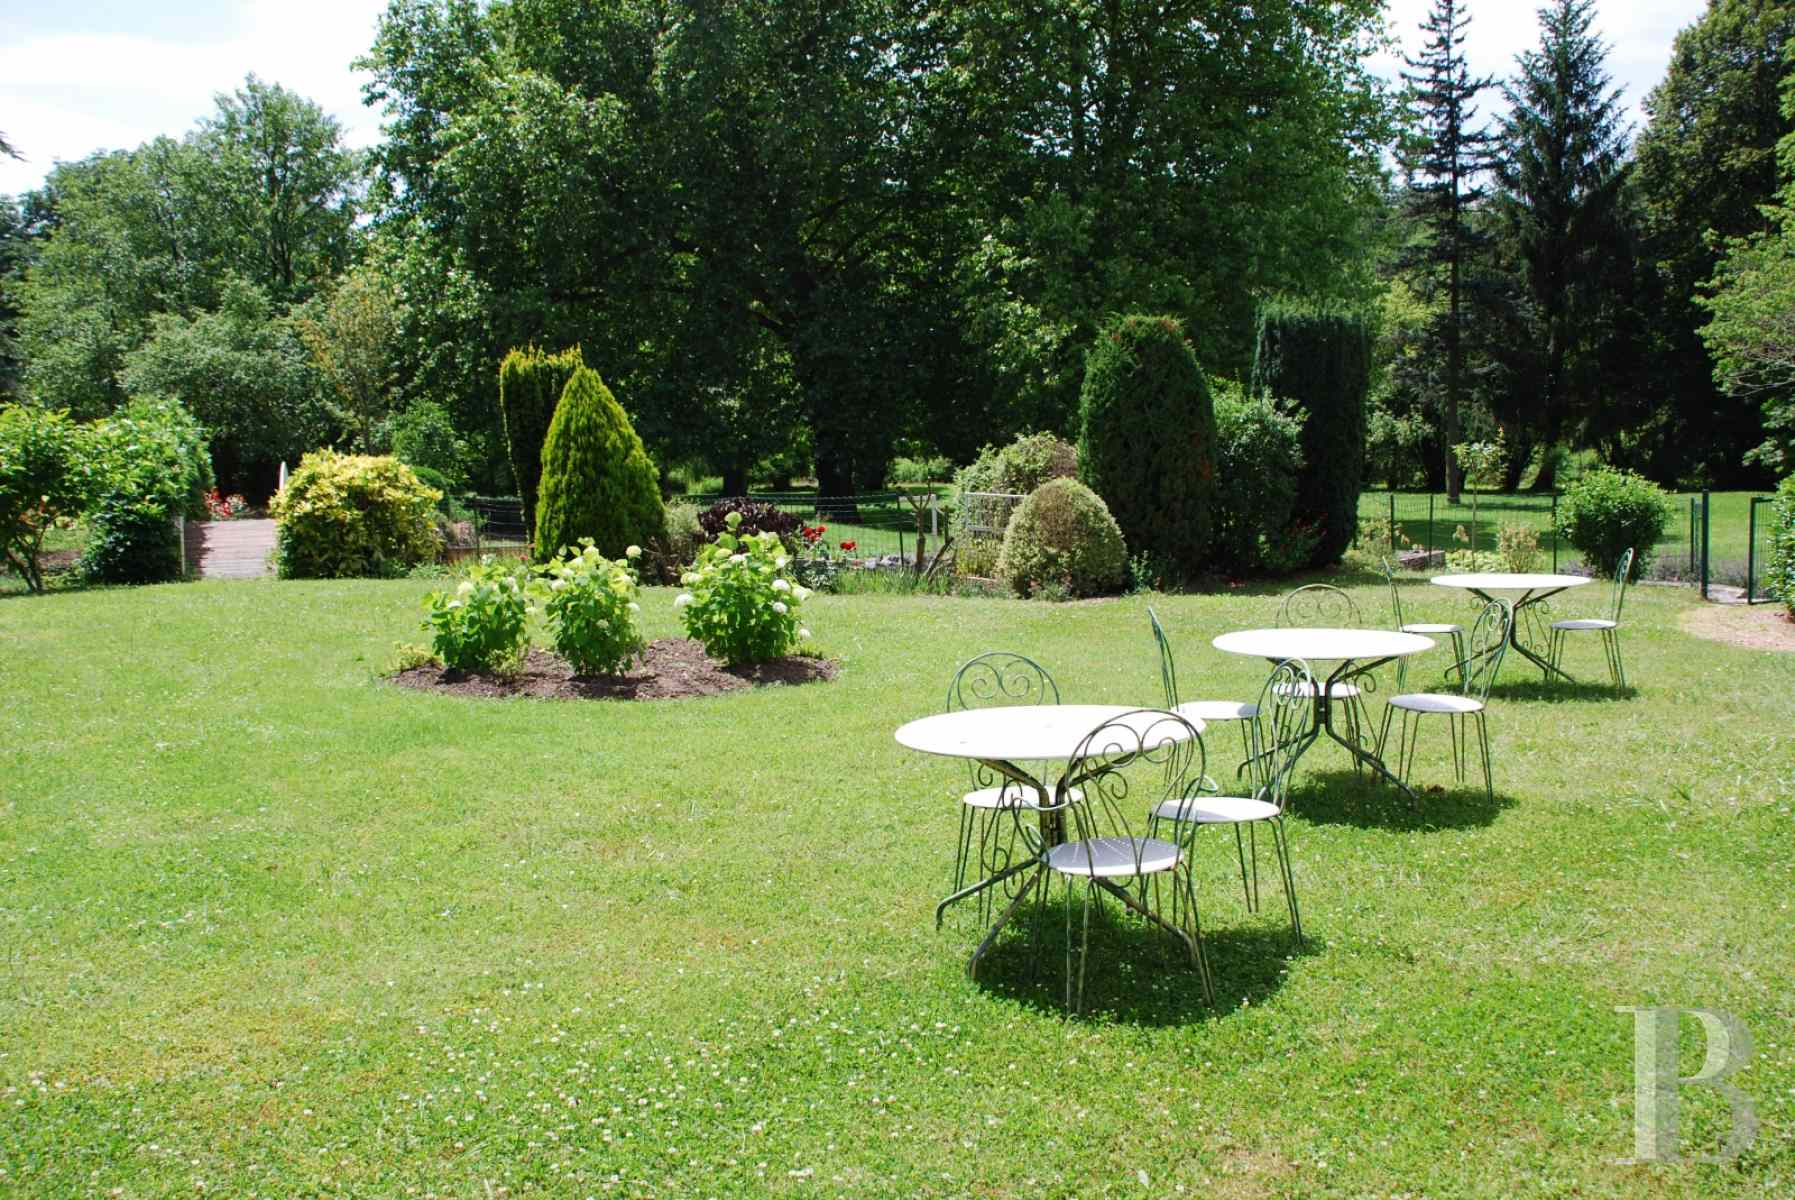 mills for sale France center val de loire parkland swimming - 6 zoom